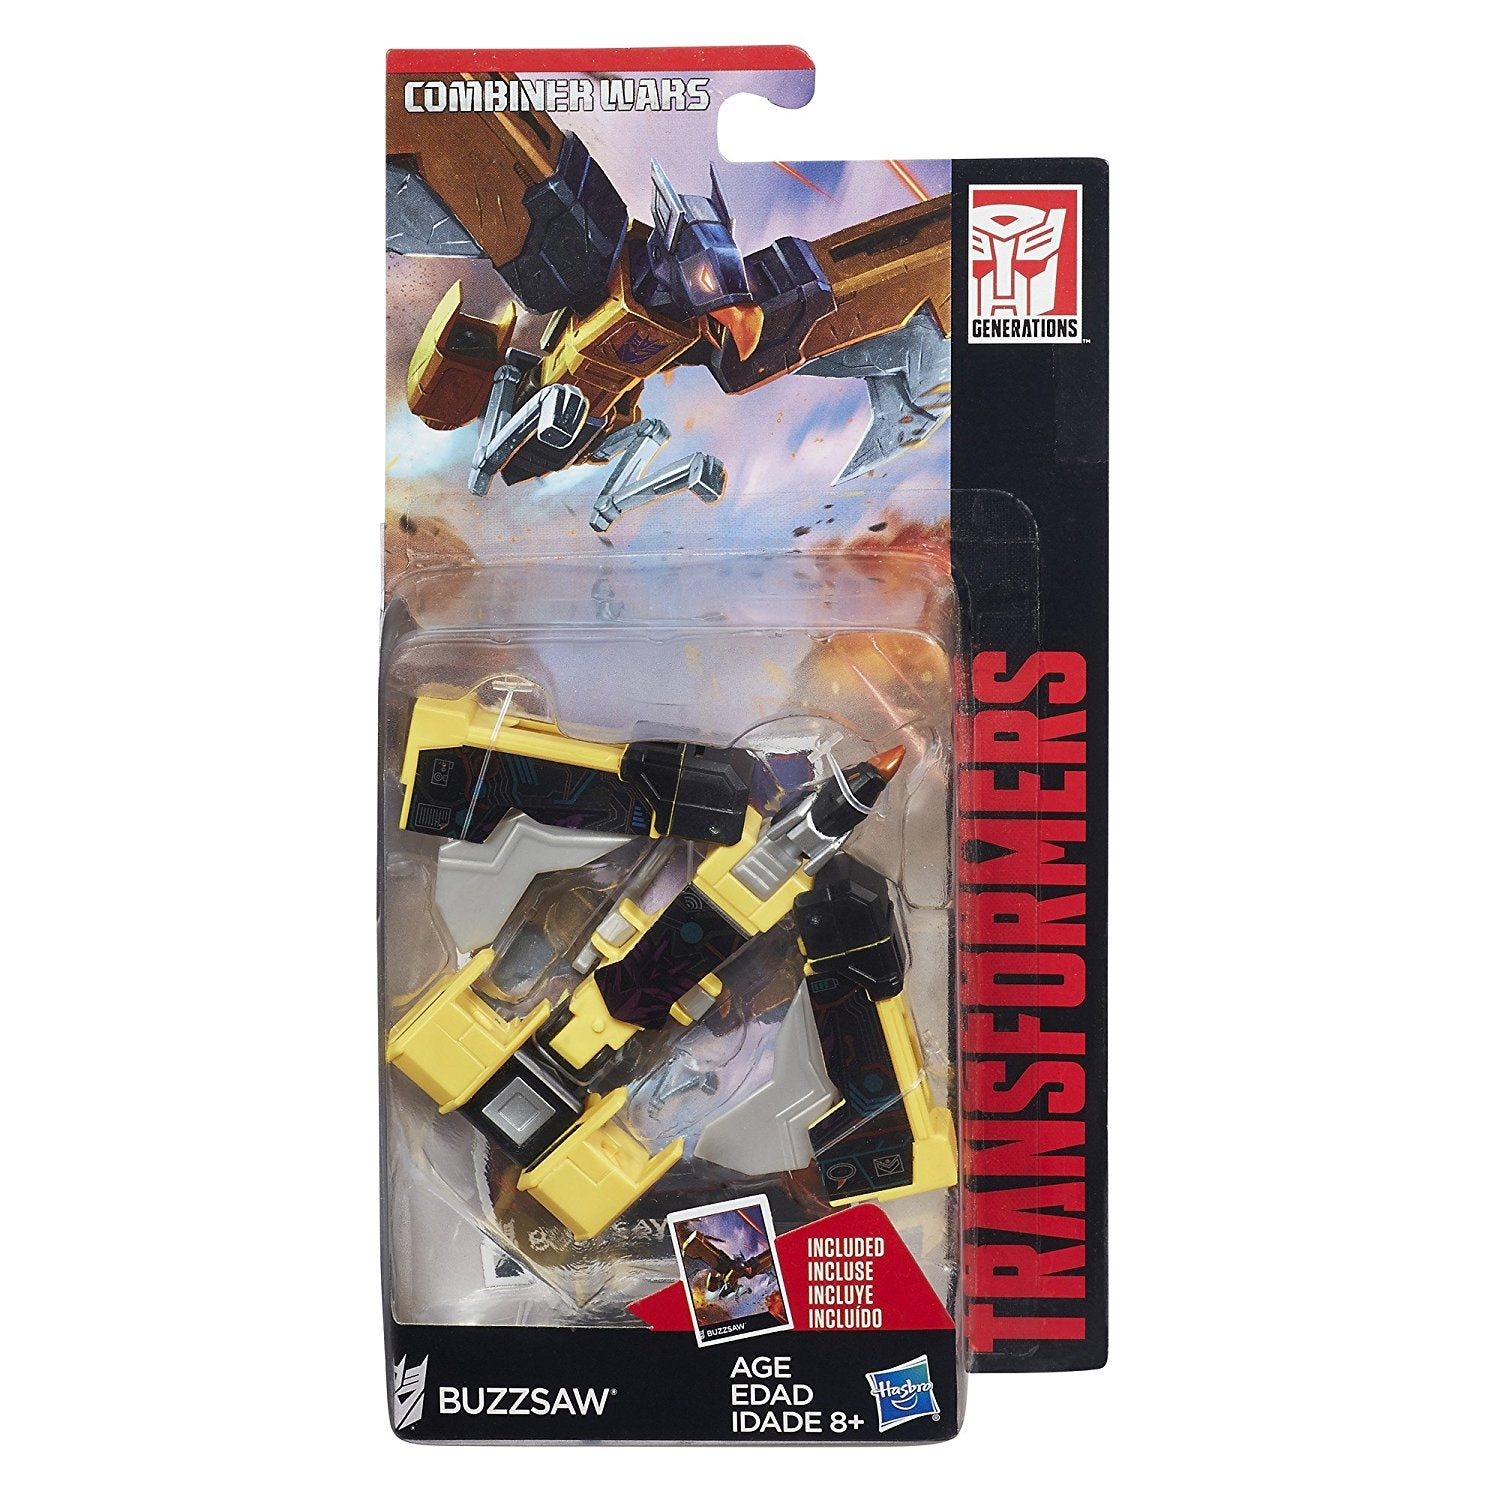 Hasbro - Buzzsaw Transformers Combiner Wars Legends Wave 5